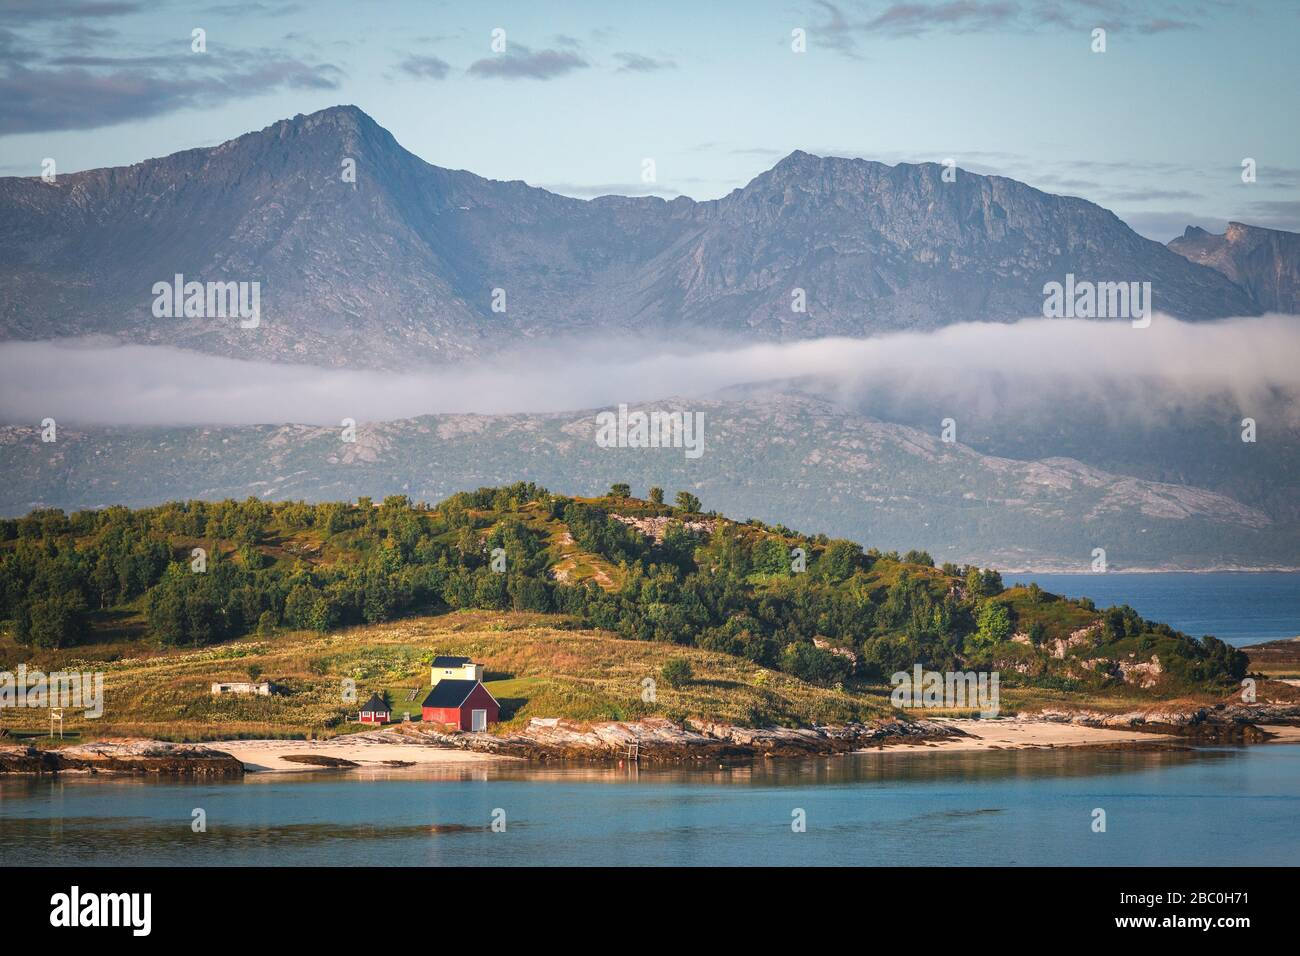 ISOLATED HOUSES ON AN ISLAND IN THE MIDDLE OF THE FJORD, SOMMAROY, ISLAND OF KVALOYA, TROMSO, NORWAY Stock Photo